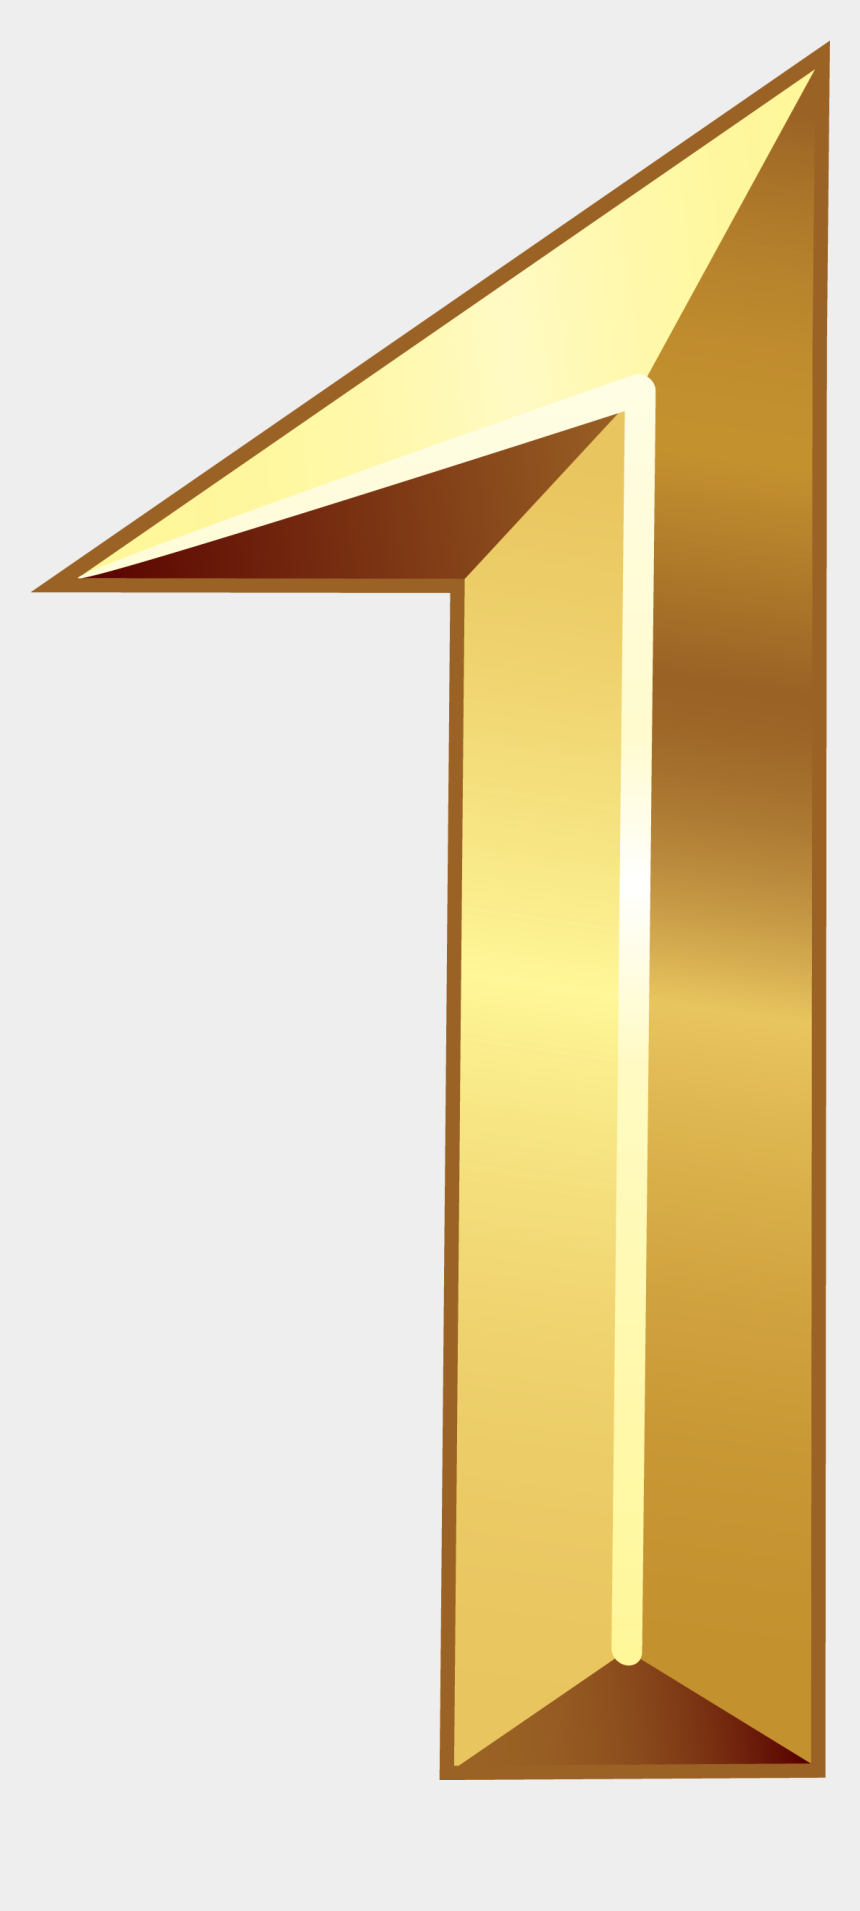 number 1 clipart, Cartoons - Gold Number One Png Clipart Image - Gold Number 1 Png